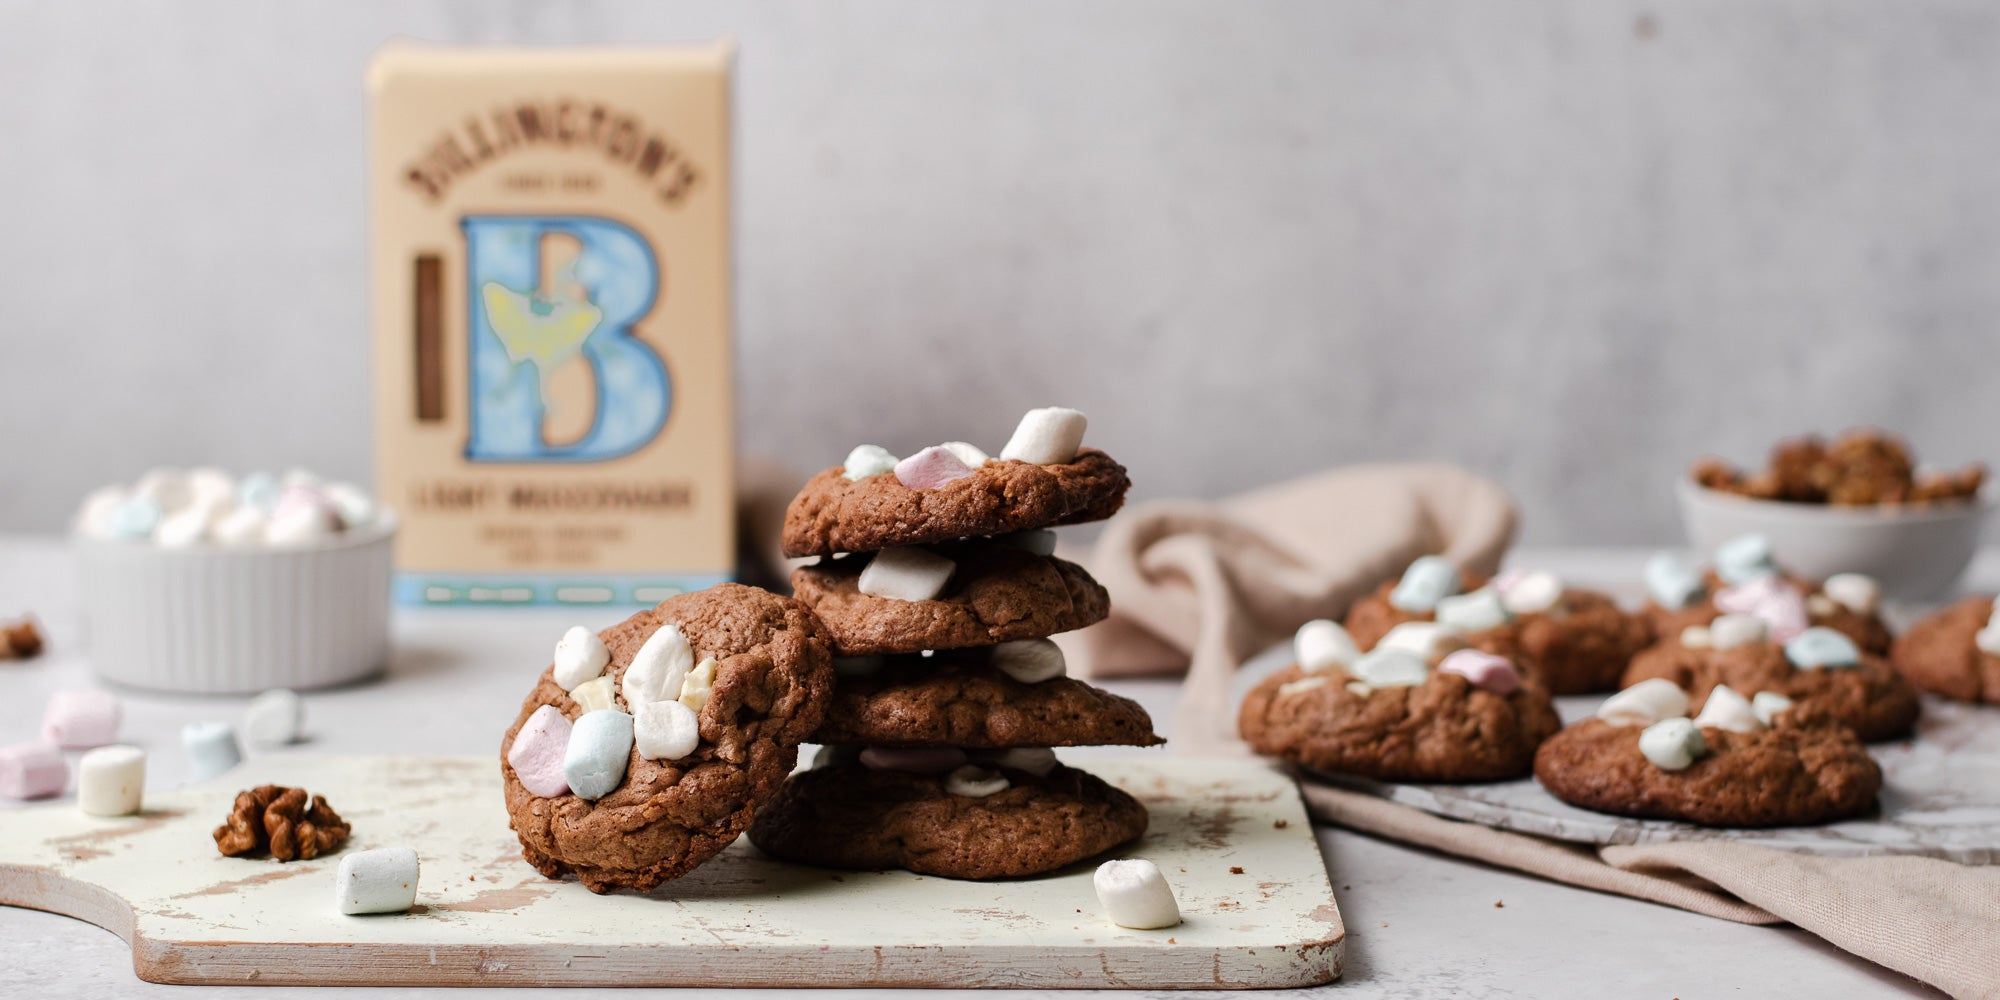 Rocky Road Cookies stacked on top of each other, on a serving board with a box of Billington's Light Muscovado in the background